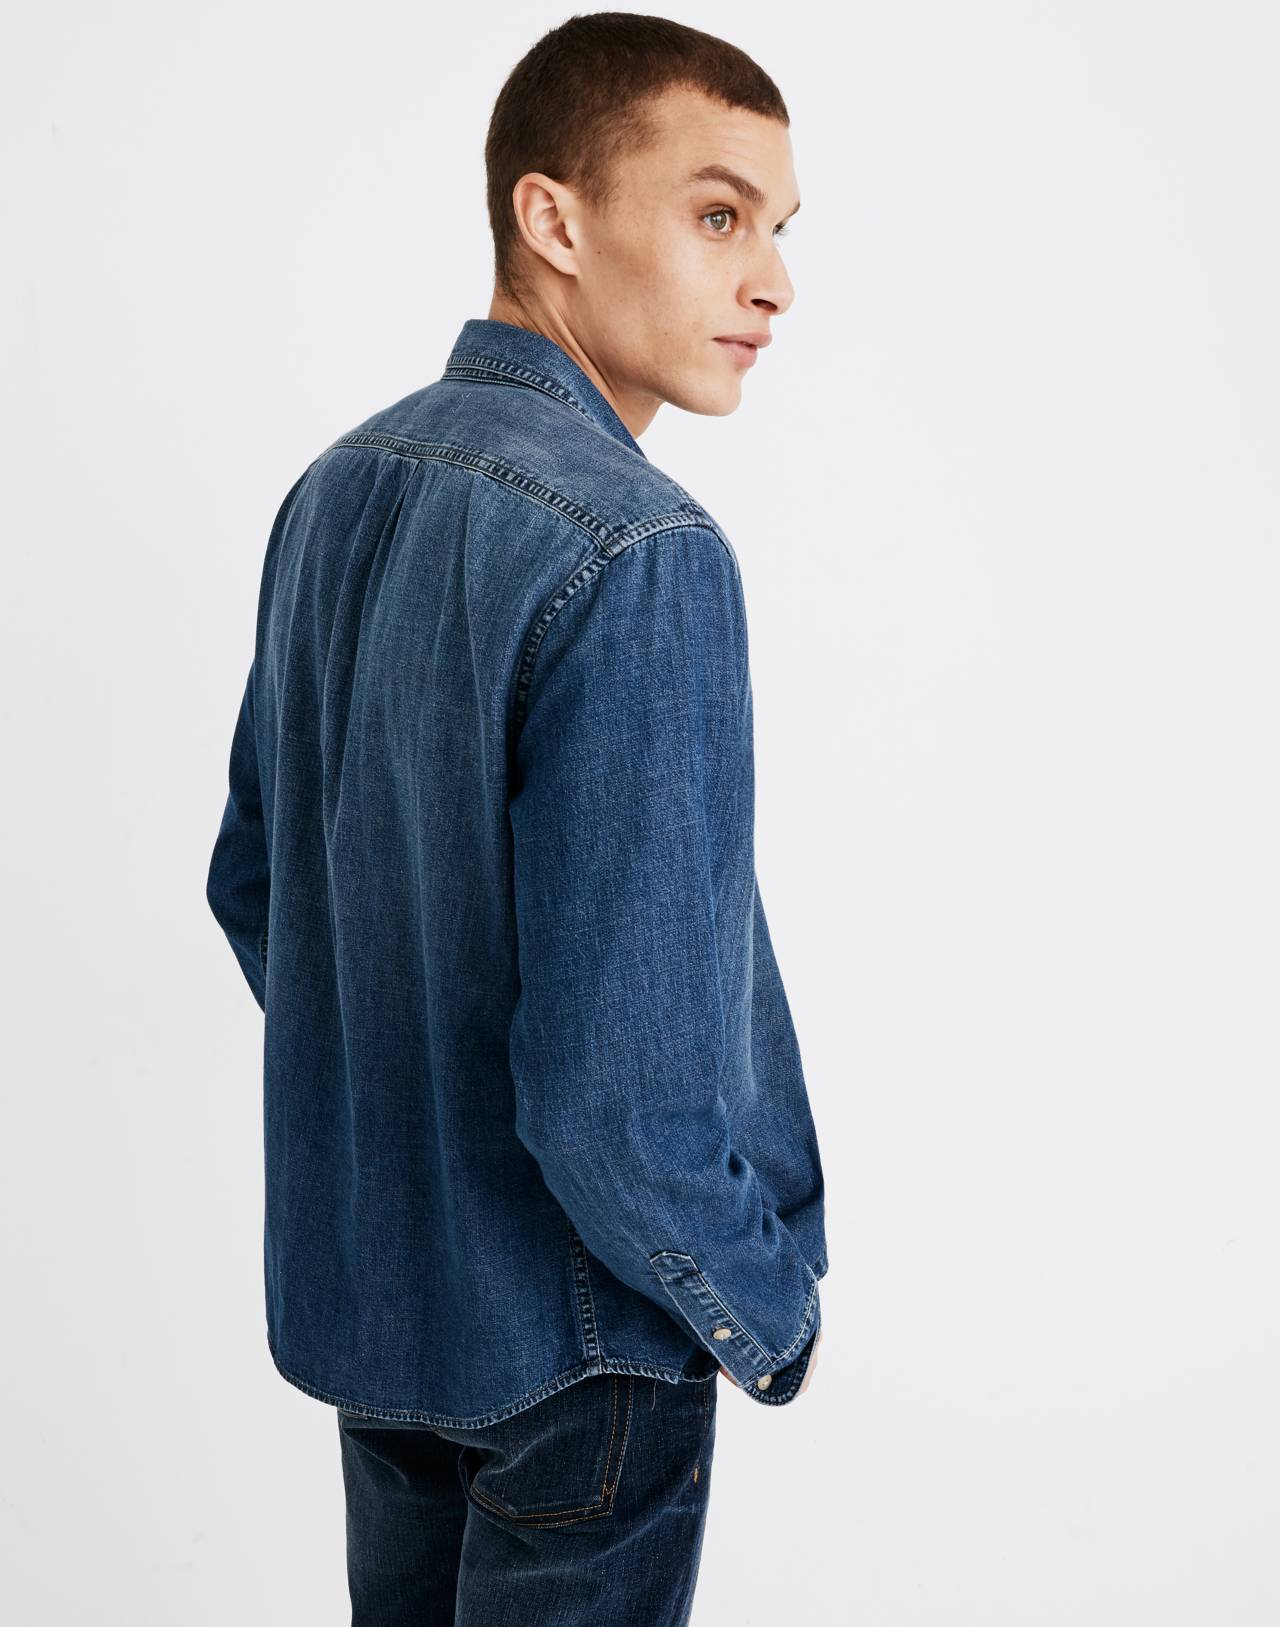 Denim Button-Down Shirt in Newhall Wash in newhall wash image 2